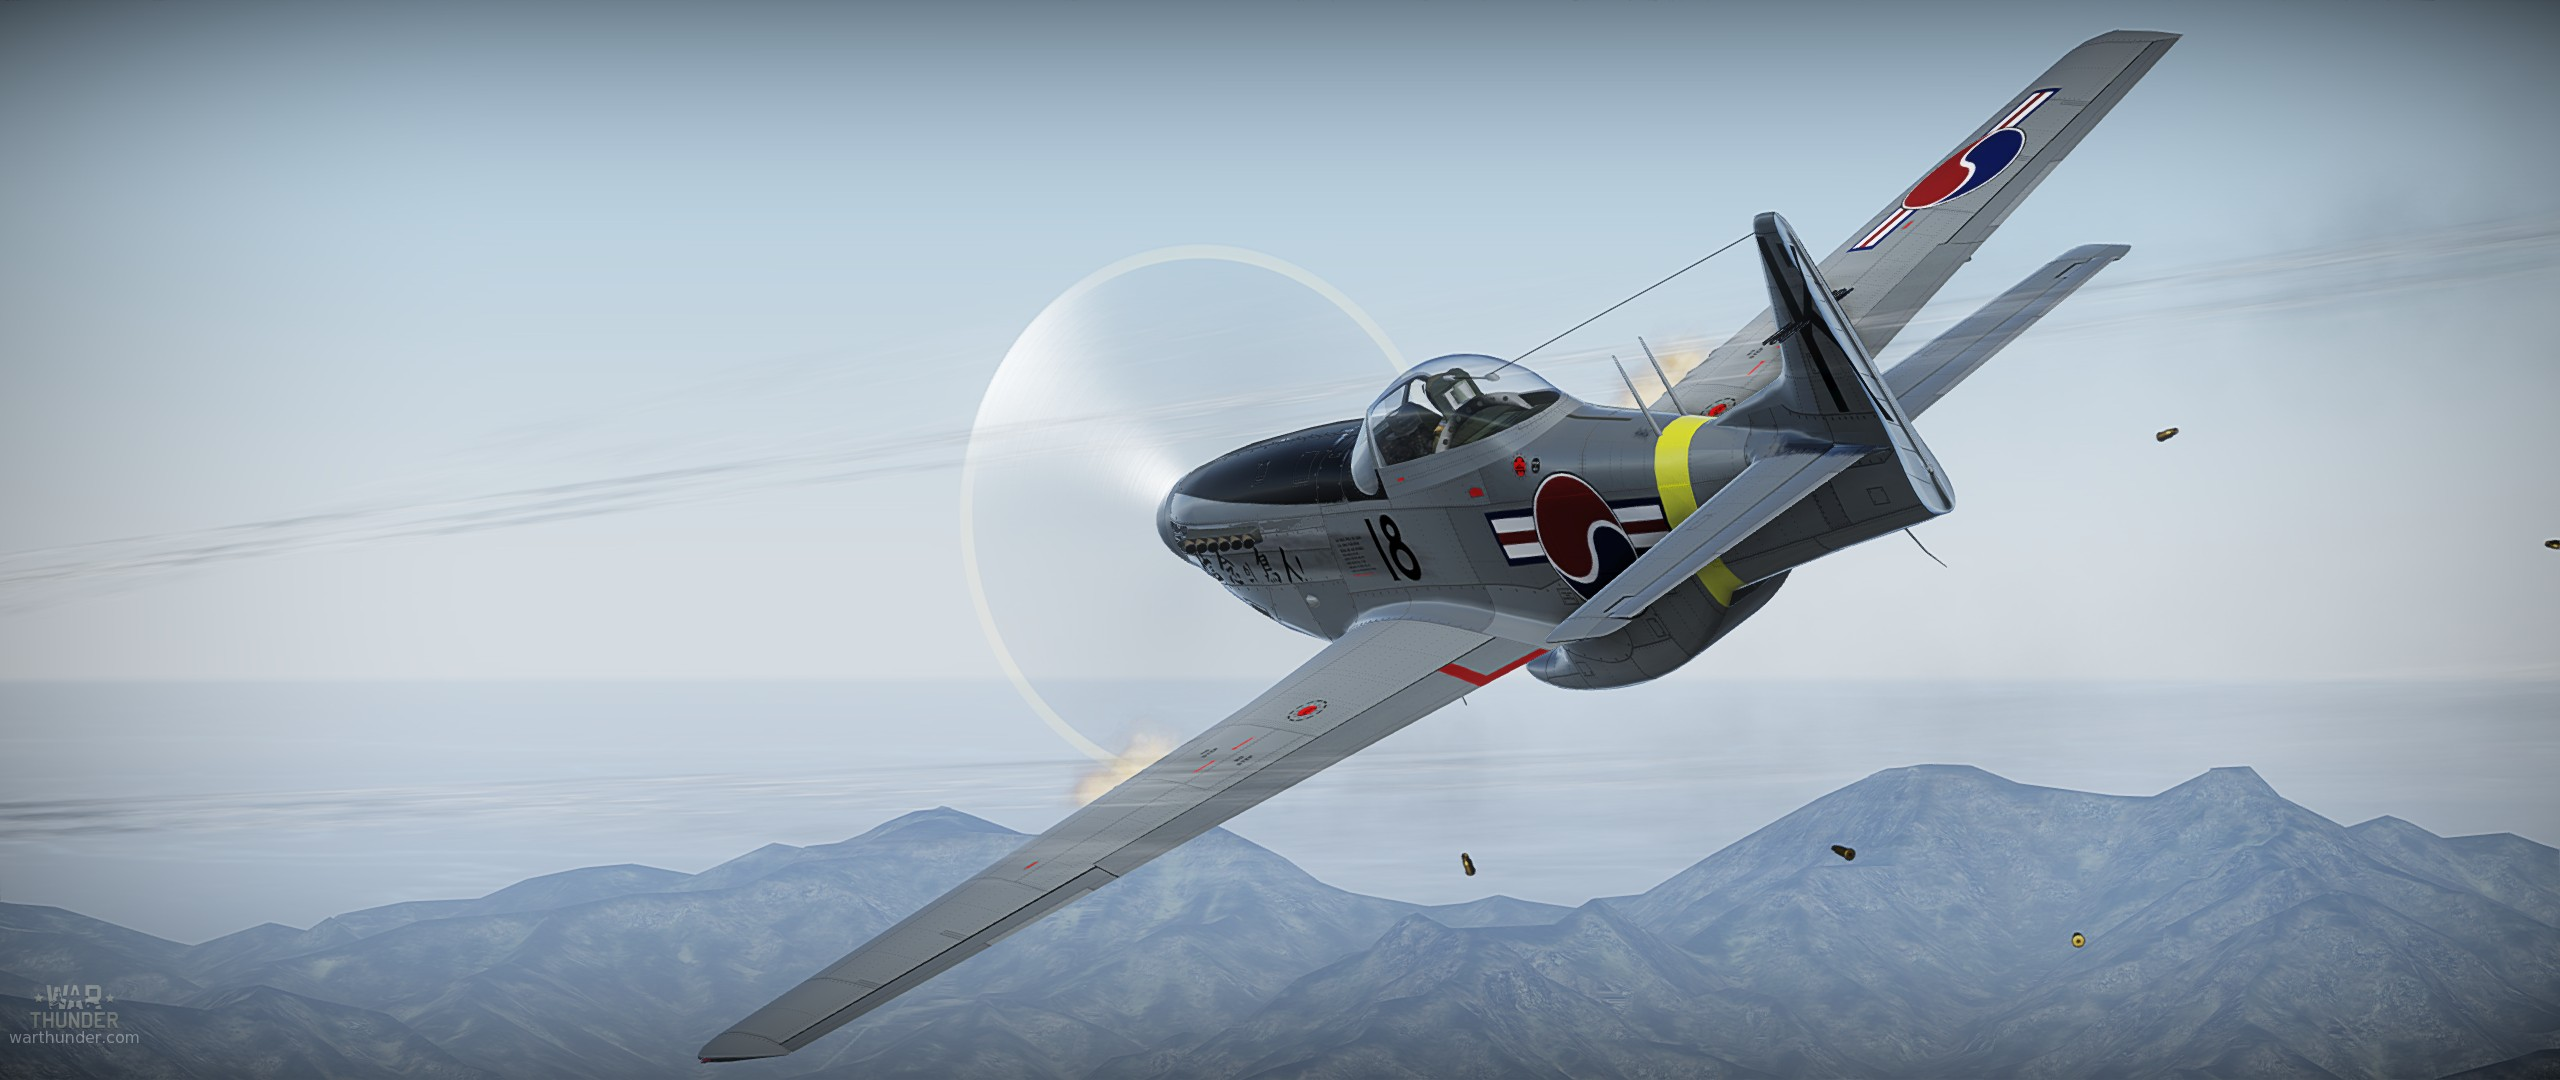 War thunder next gen mmo combat game for pc mac linux for Combat portent 30 20